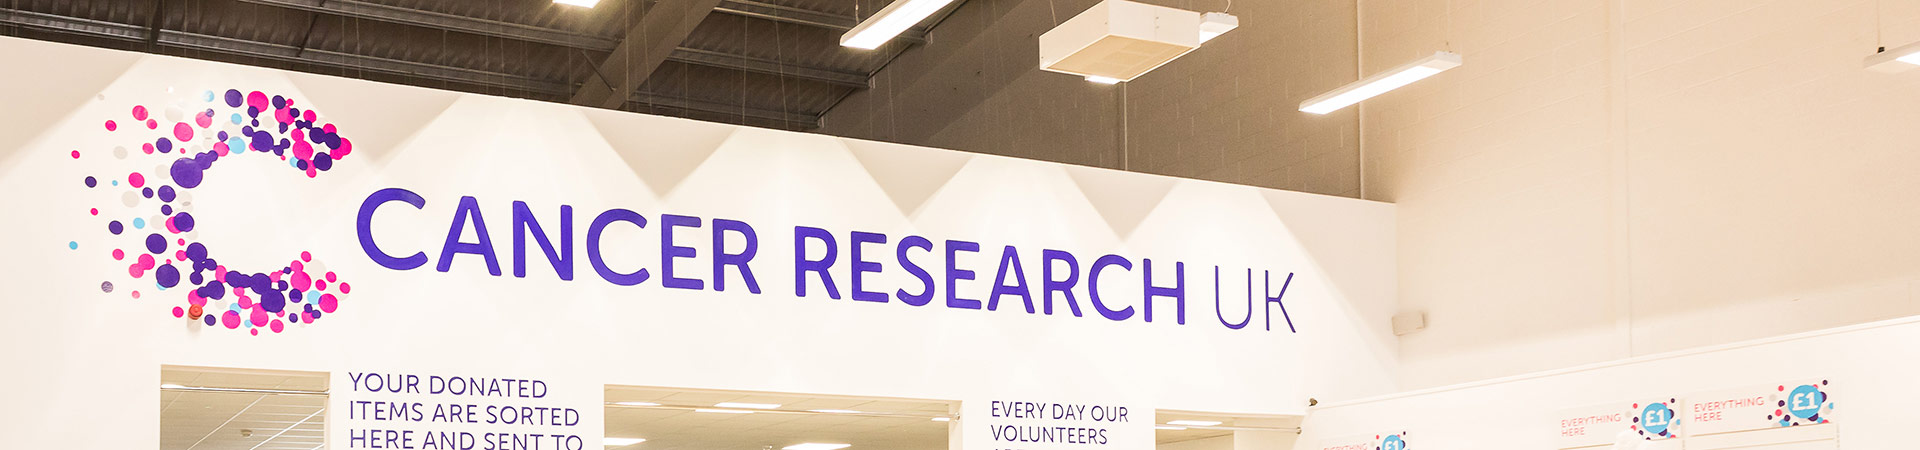 Cancer Research UK Superstore, Wisbech